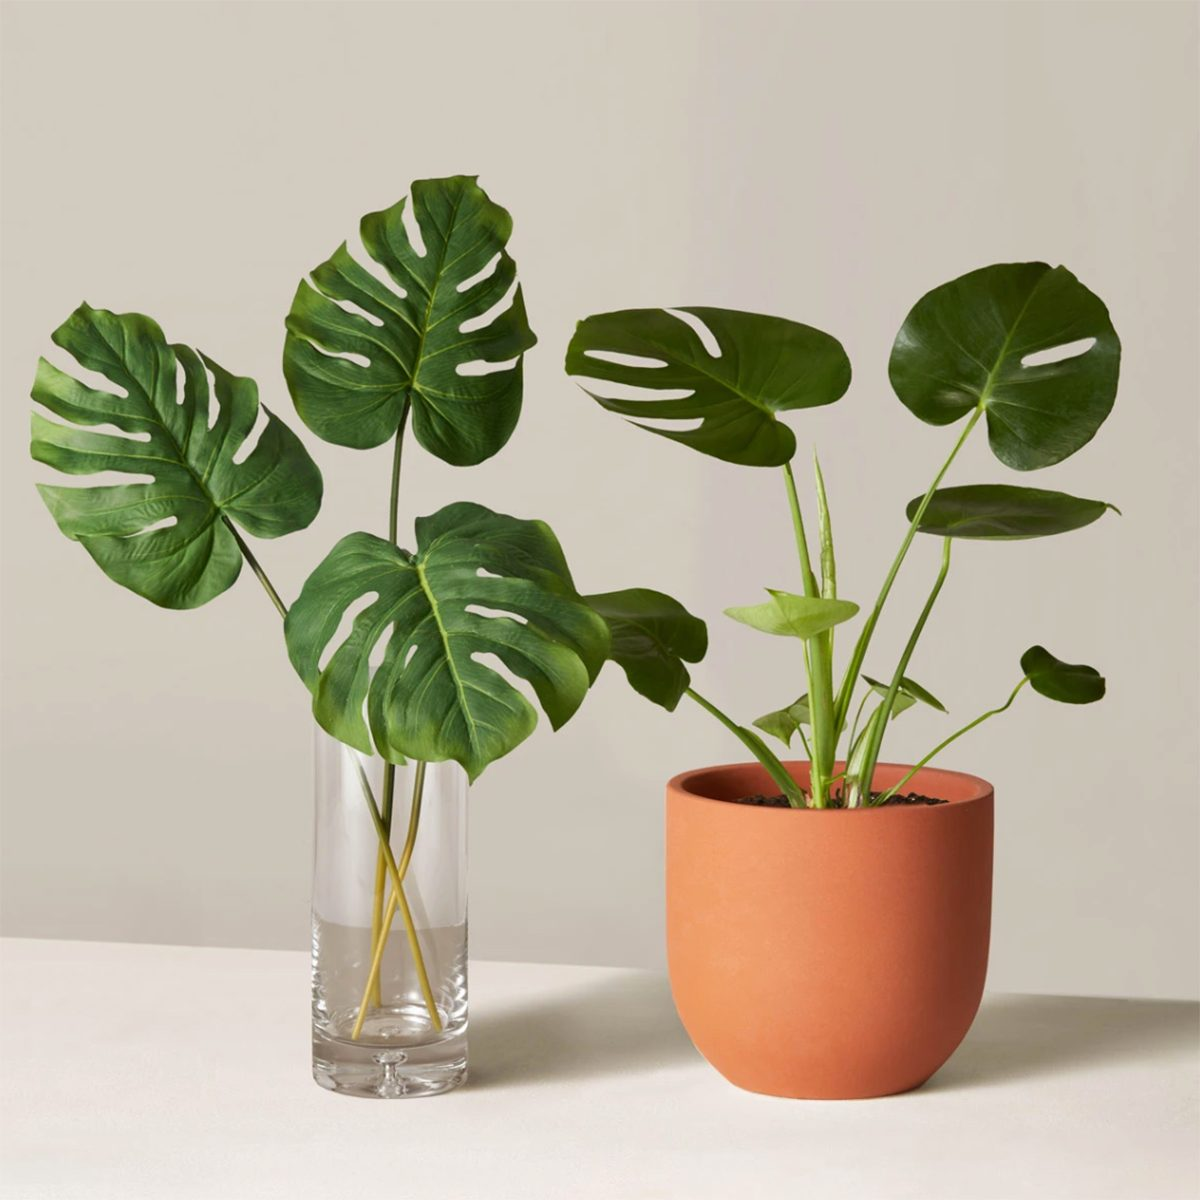 Monstera house plant from the Sill